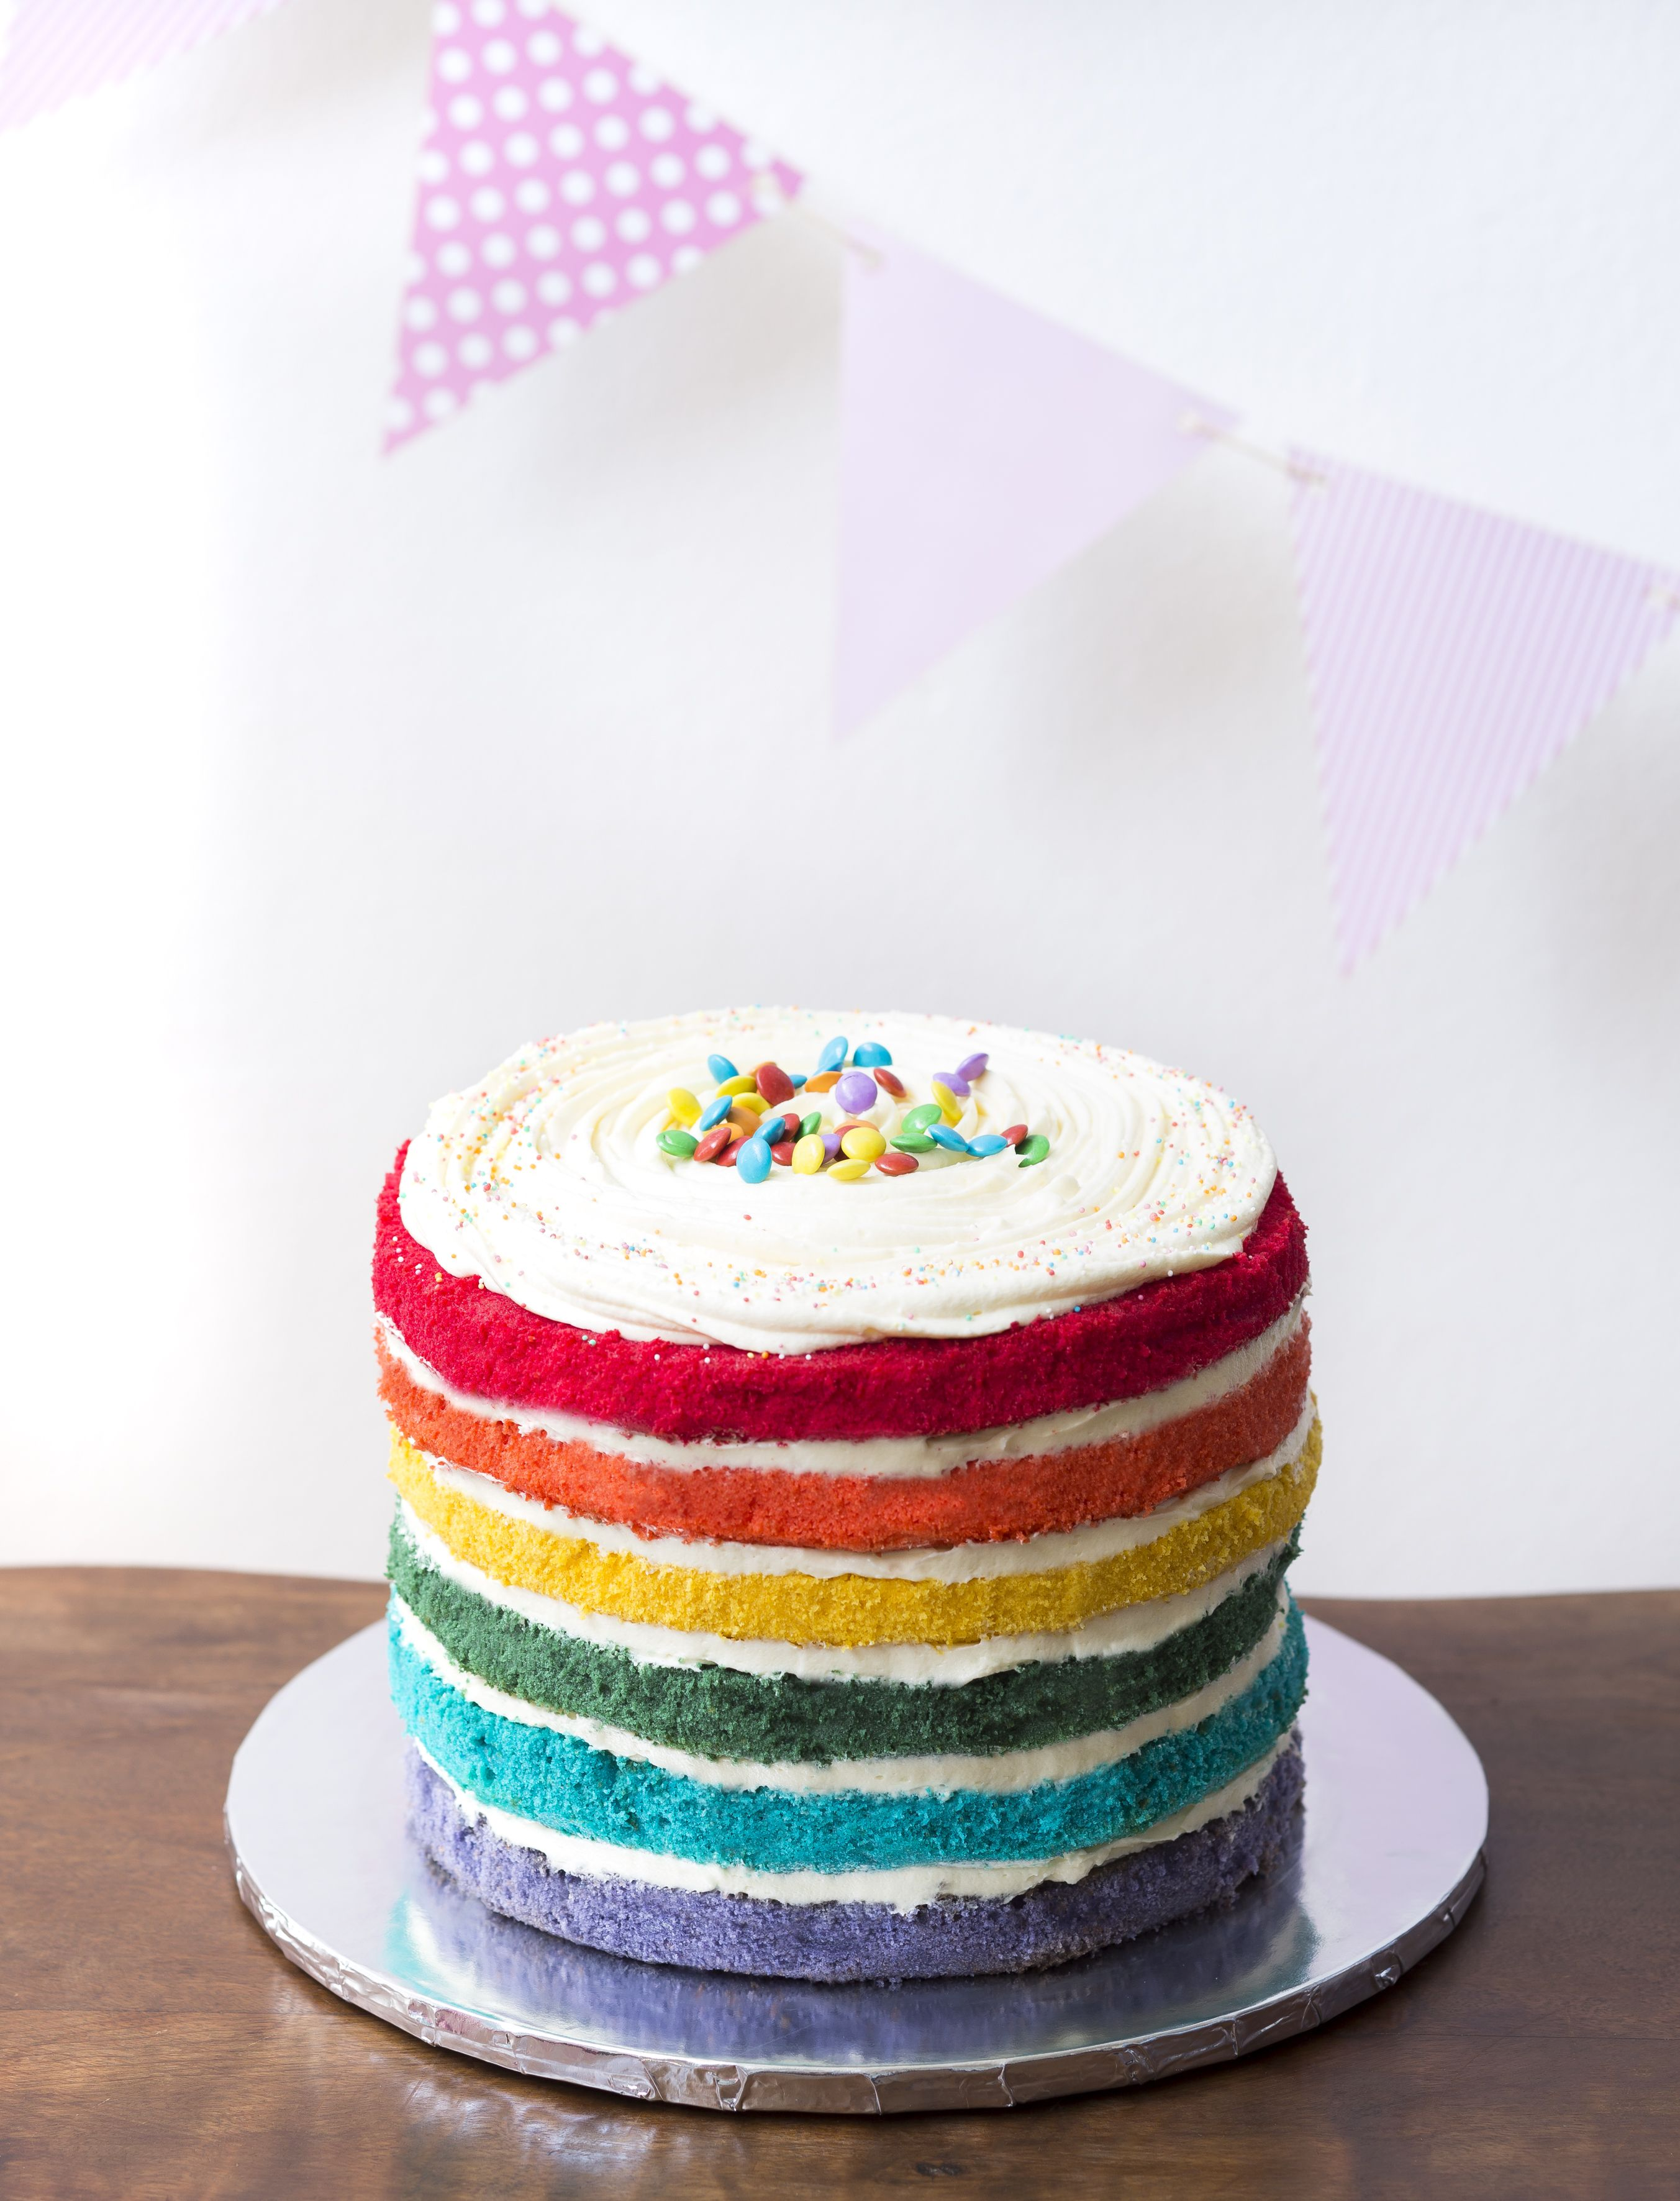 Naked Rainbow Cake with Cream Cheese Icing. Made by Sweet Tooth https://www.facebook.com/sweettoothcpt Bunting by Happy Time CPT https://www.facebook.com/happytimecpt Photo by Willem Lourens